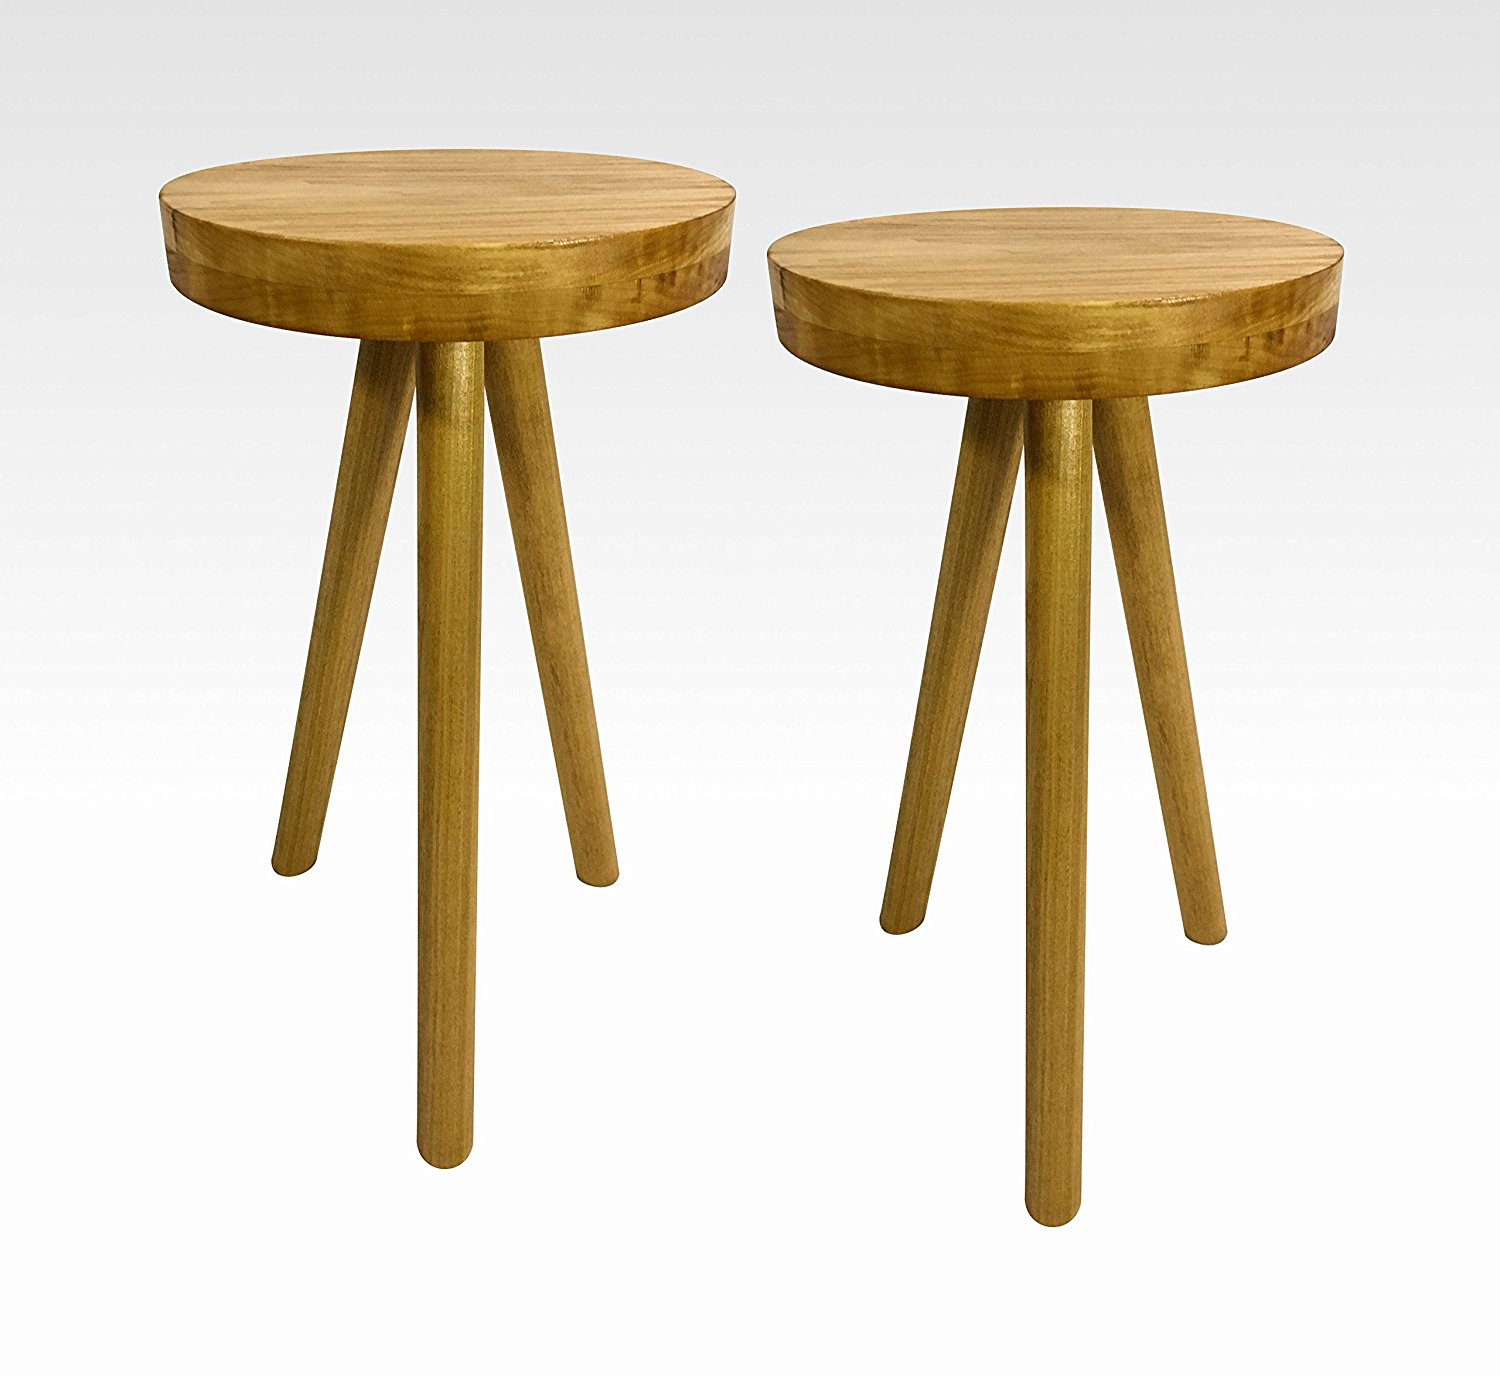 Modern Pair of Side Tables in Honey by Candlewood Furniture End Table Bar Stool, Bedside Table, Nightstand, Wood